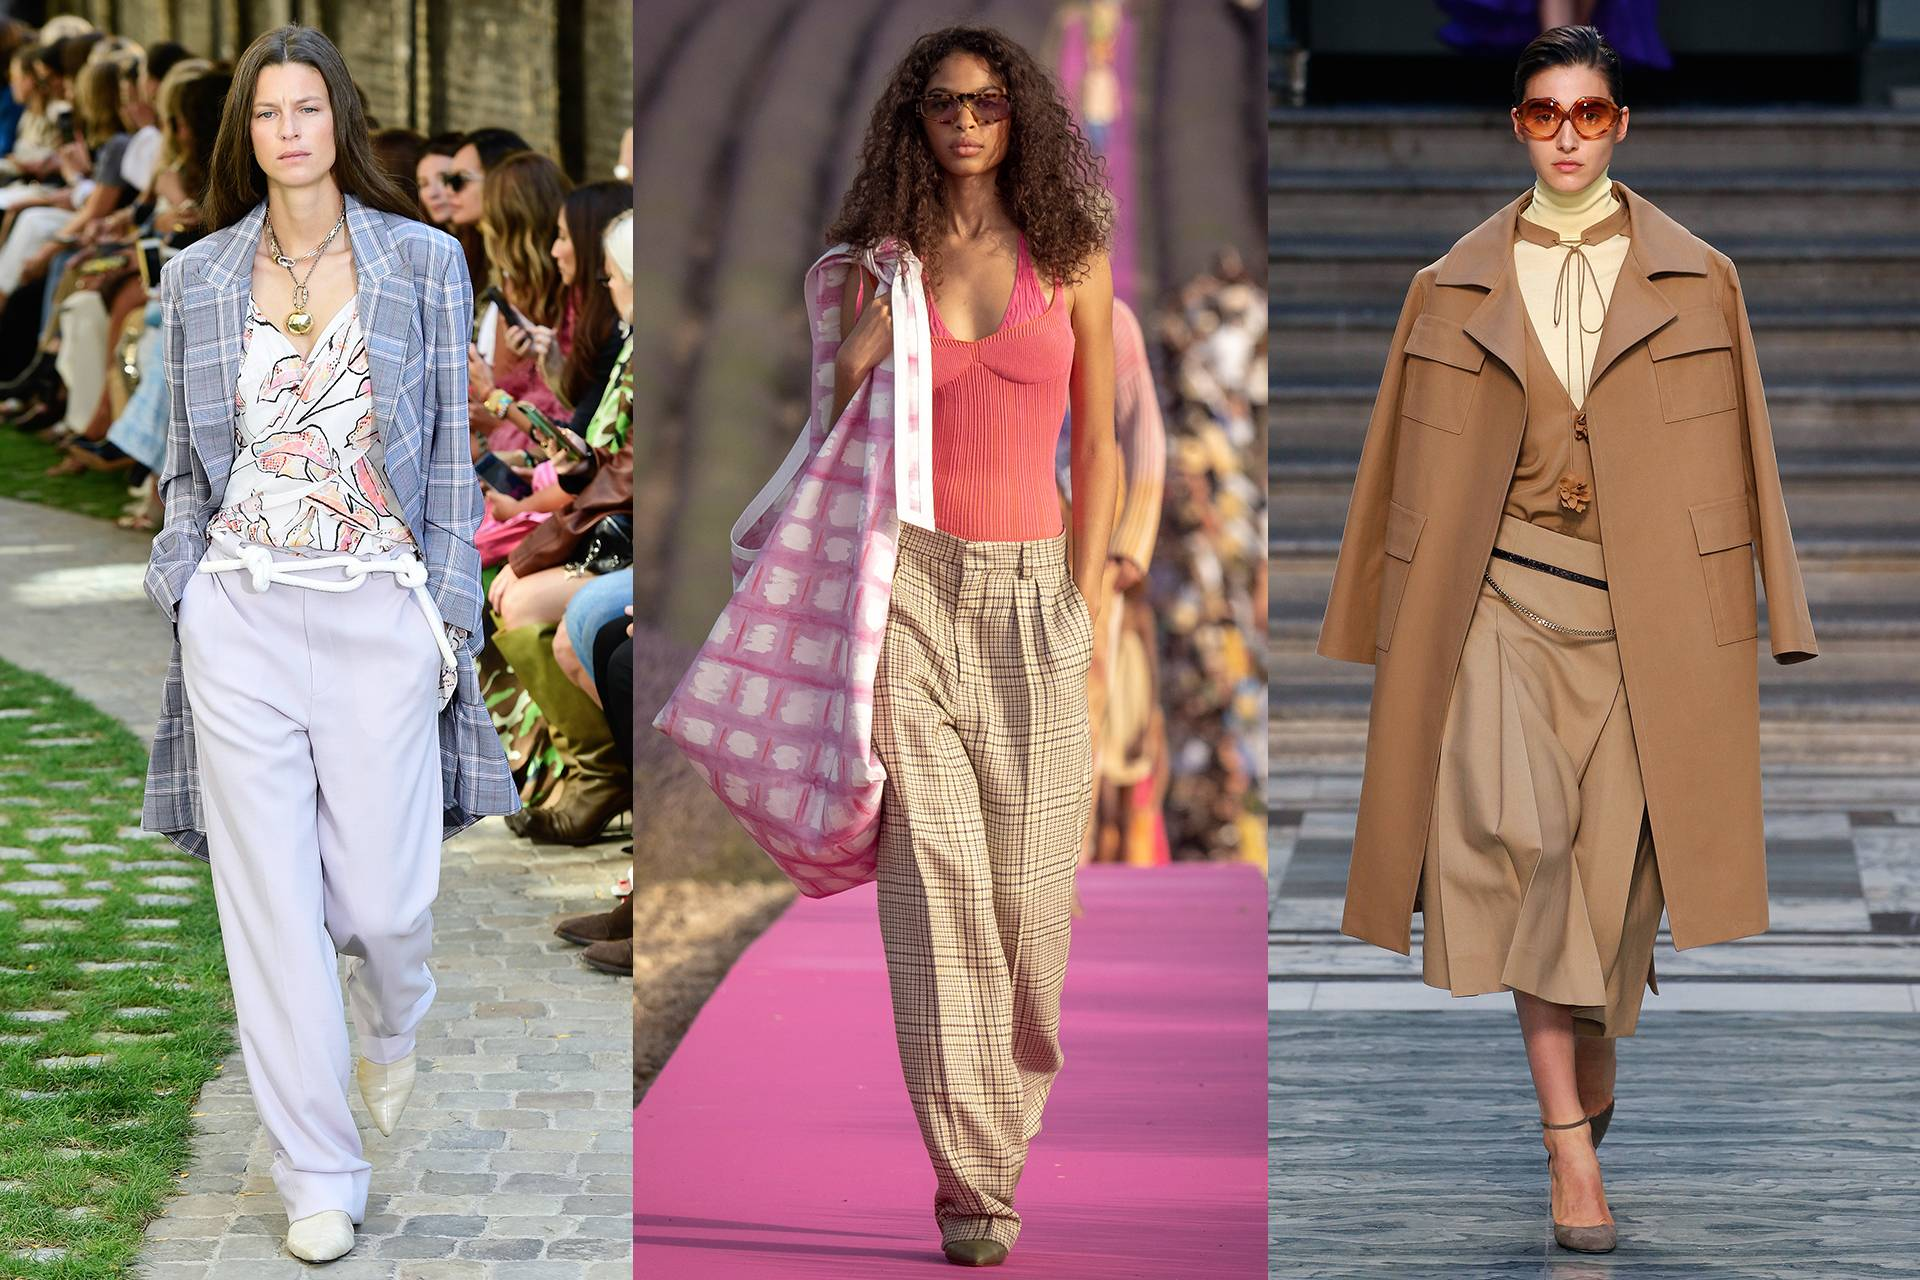 Spring Summer 8 Fashion Trends: Looks & How To Wear Them